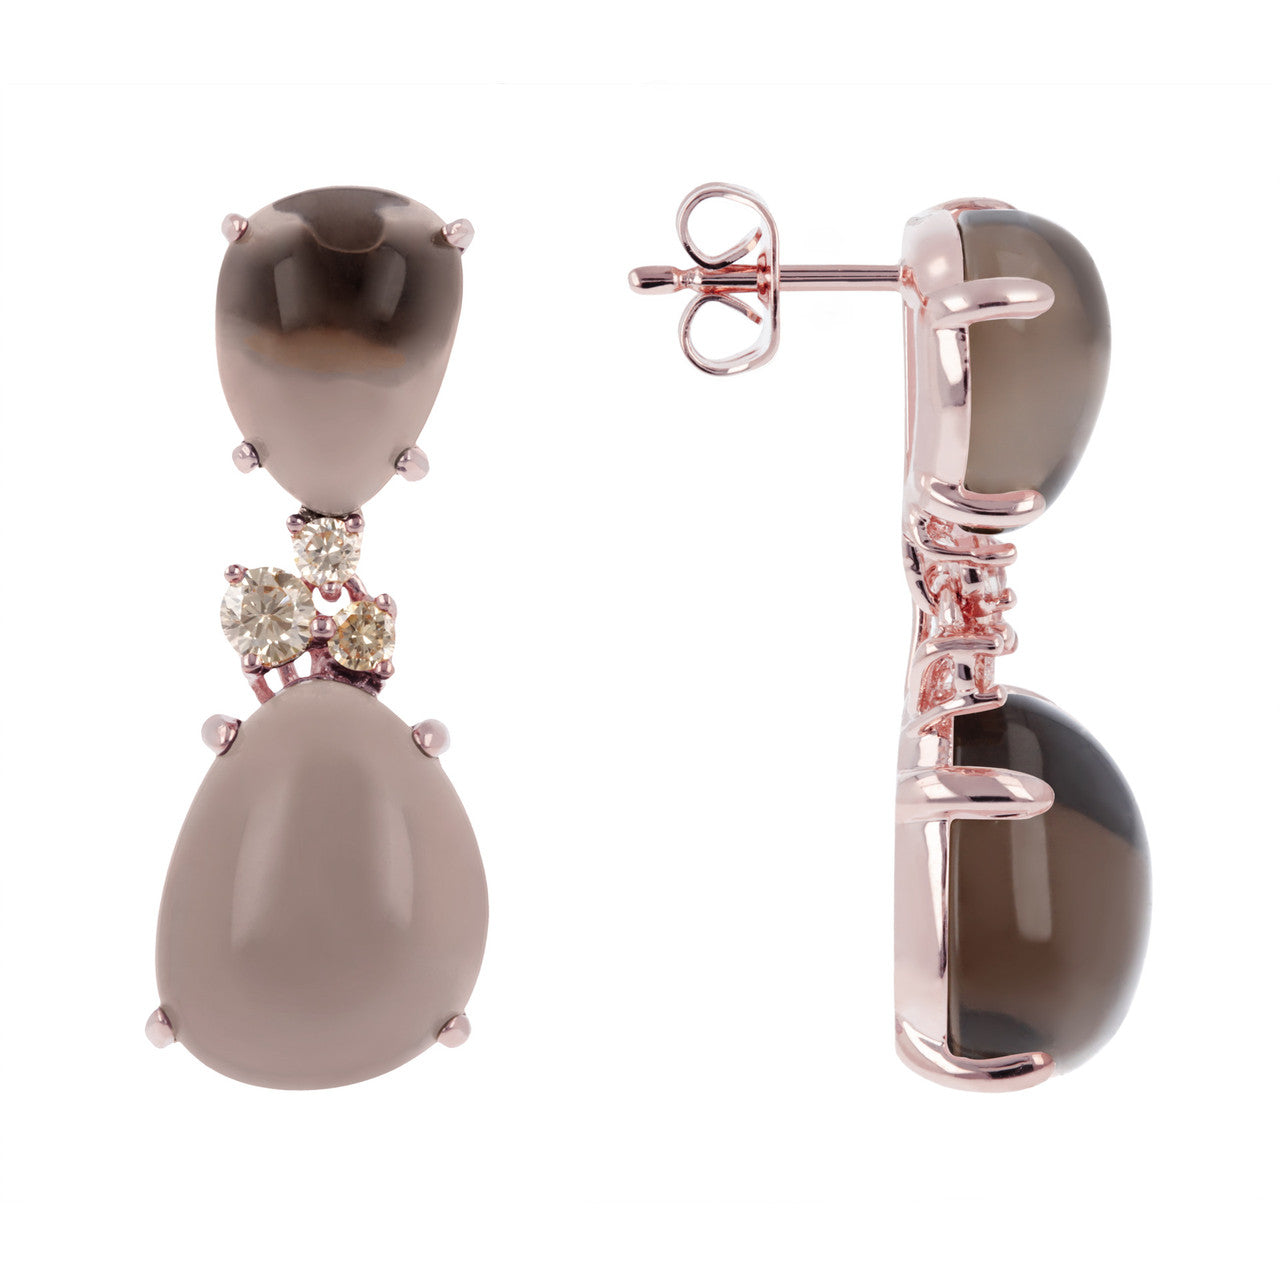 Cabochon earrings SMOKY QUARTZ front and side